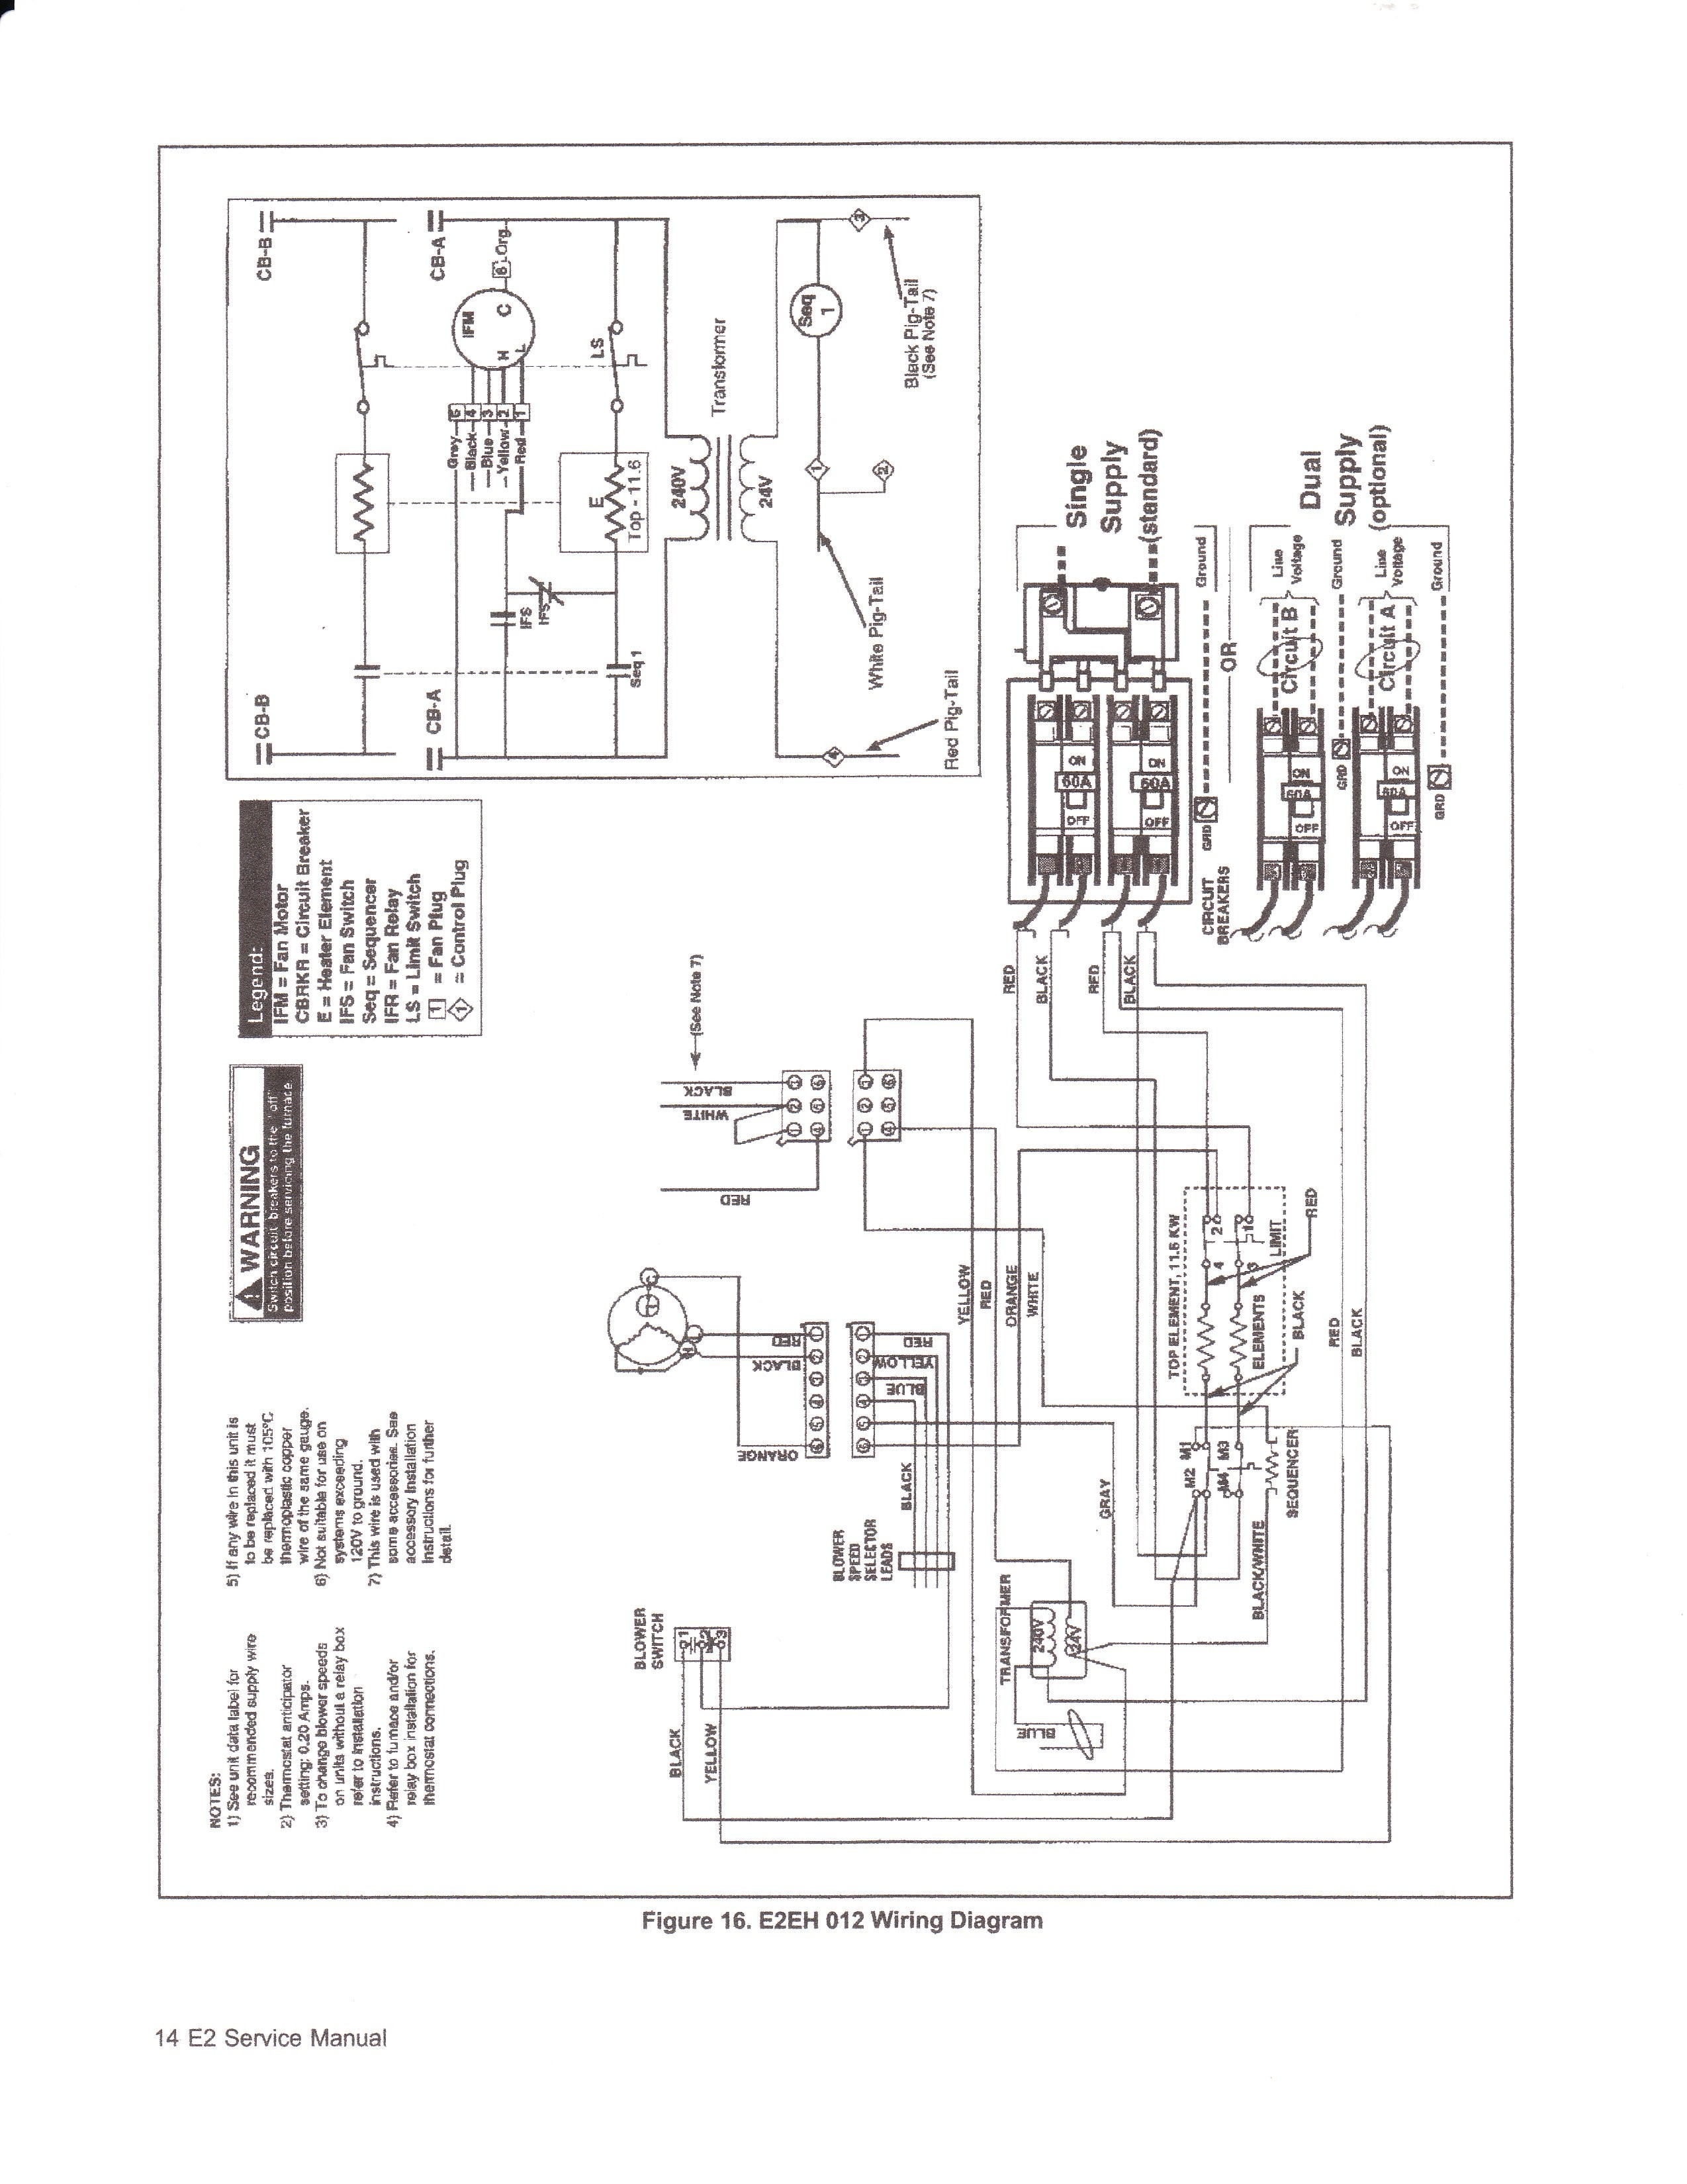 intertherm ac unit wiring diagram Collection-Nordyne Wiring Diagram Electric Furnace New Intertherm Electric Furnace Wiring Diagram For Nordyne Heat Pump 16-s